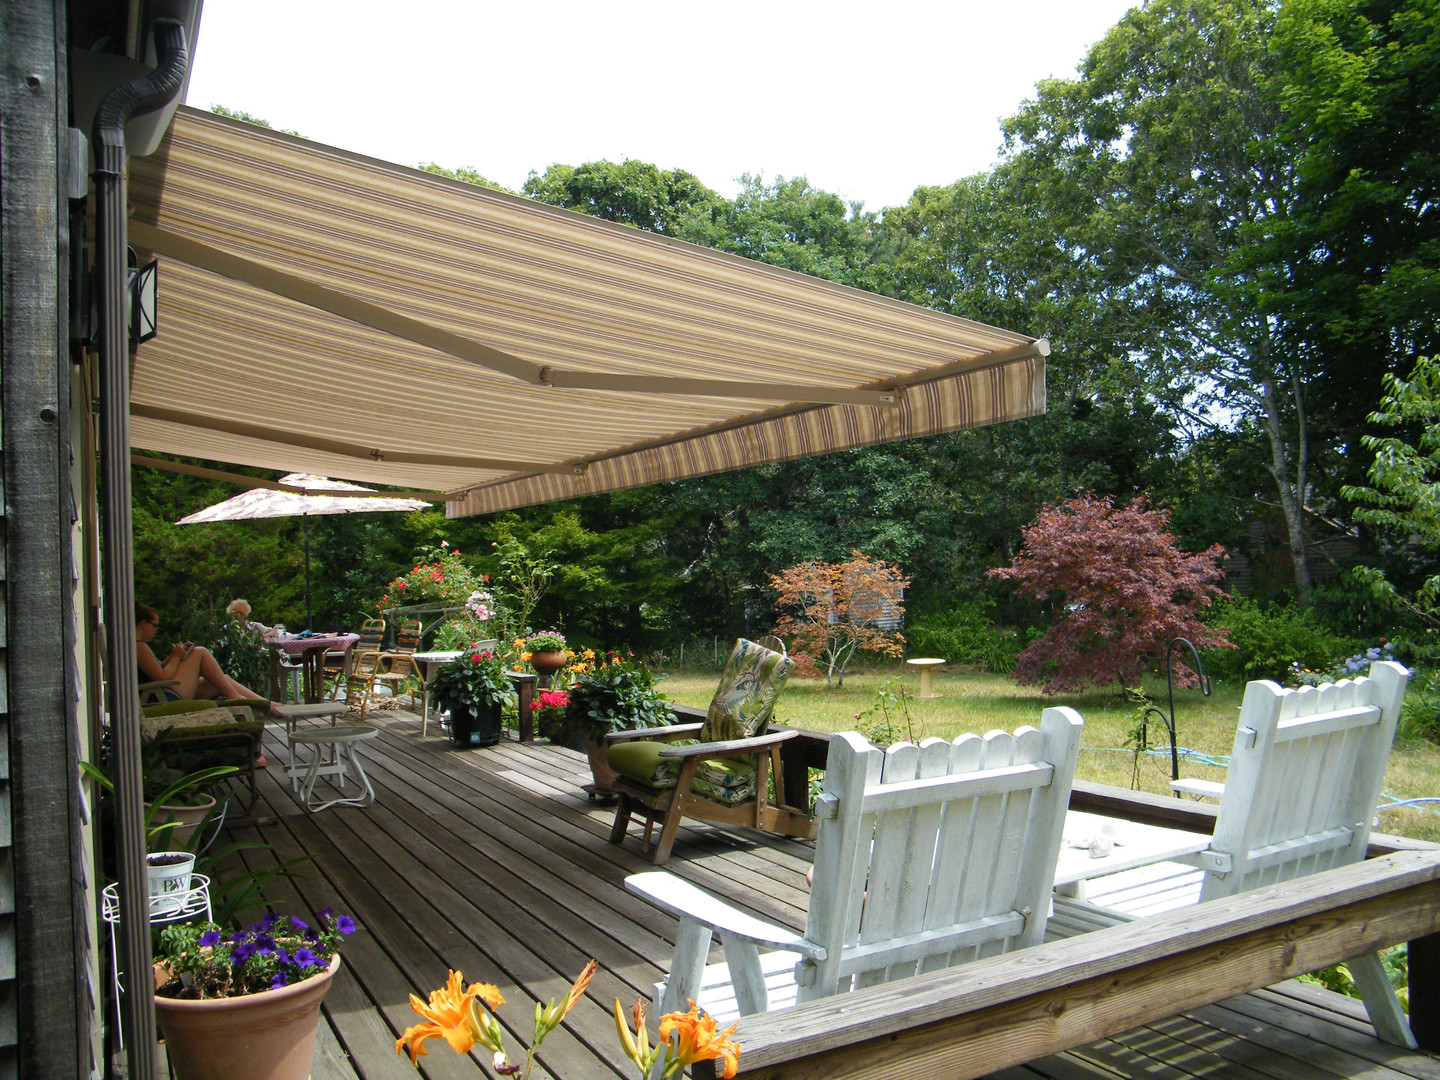 Retractable Tan and White Awning